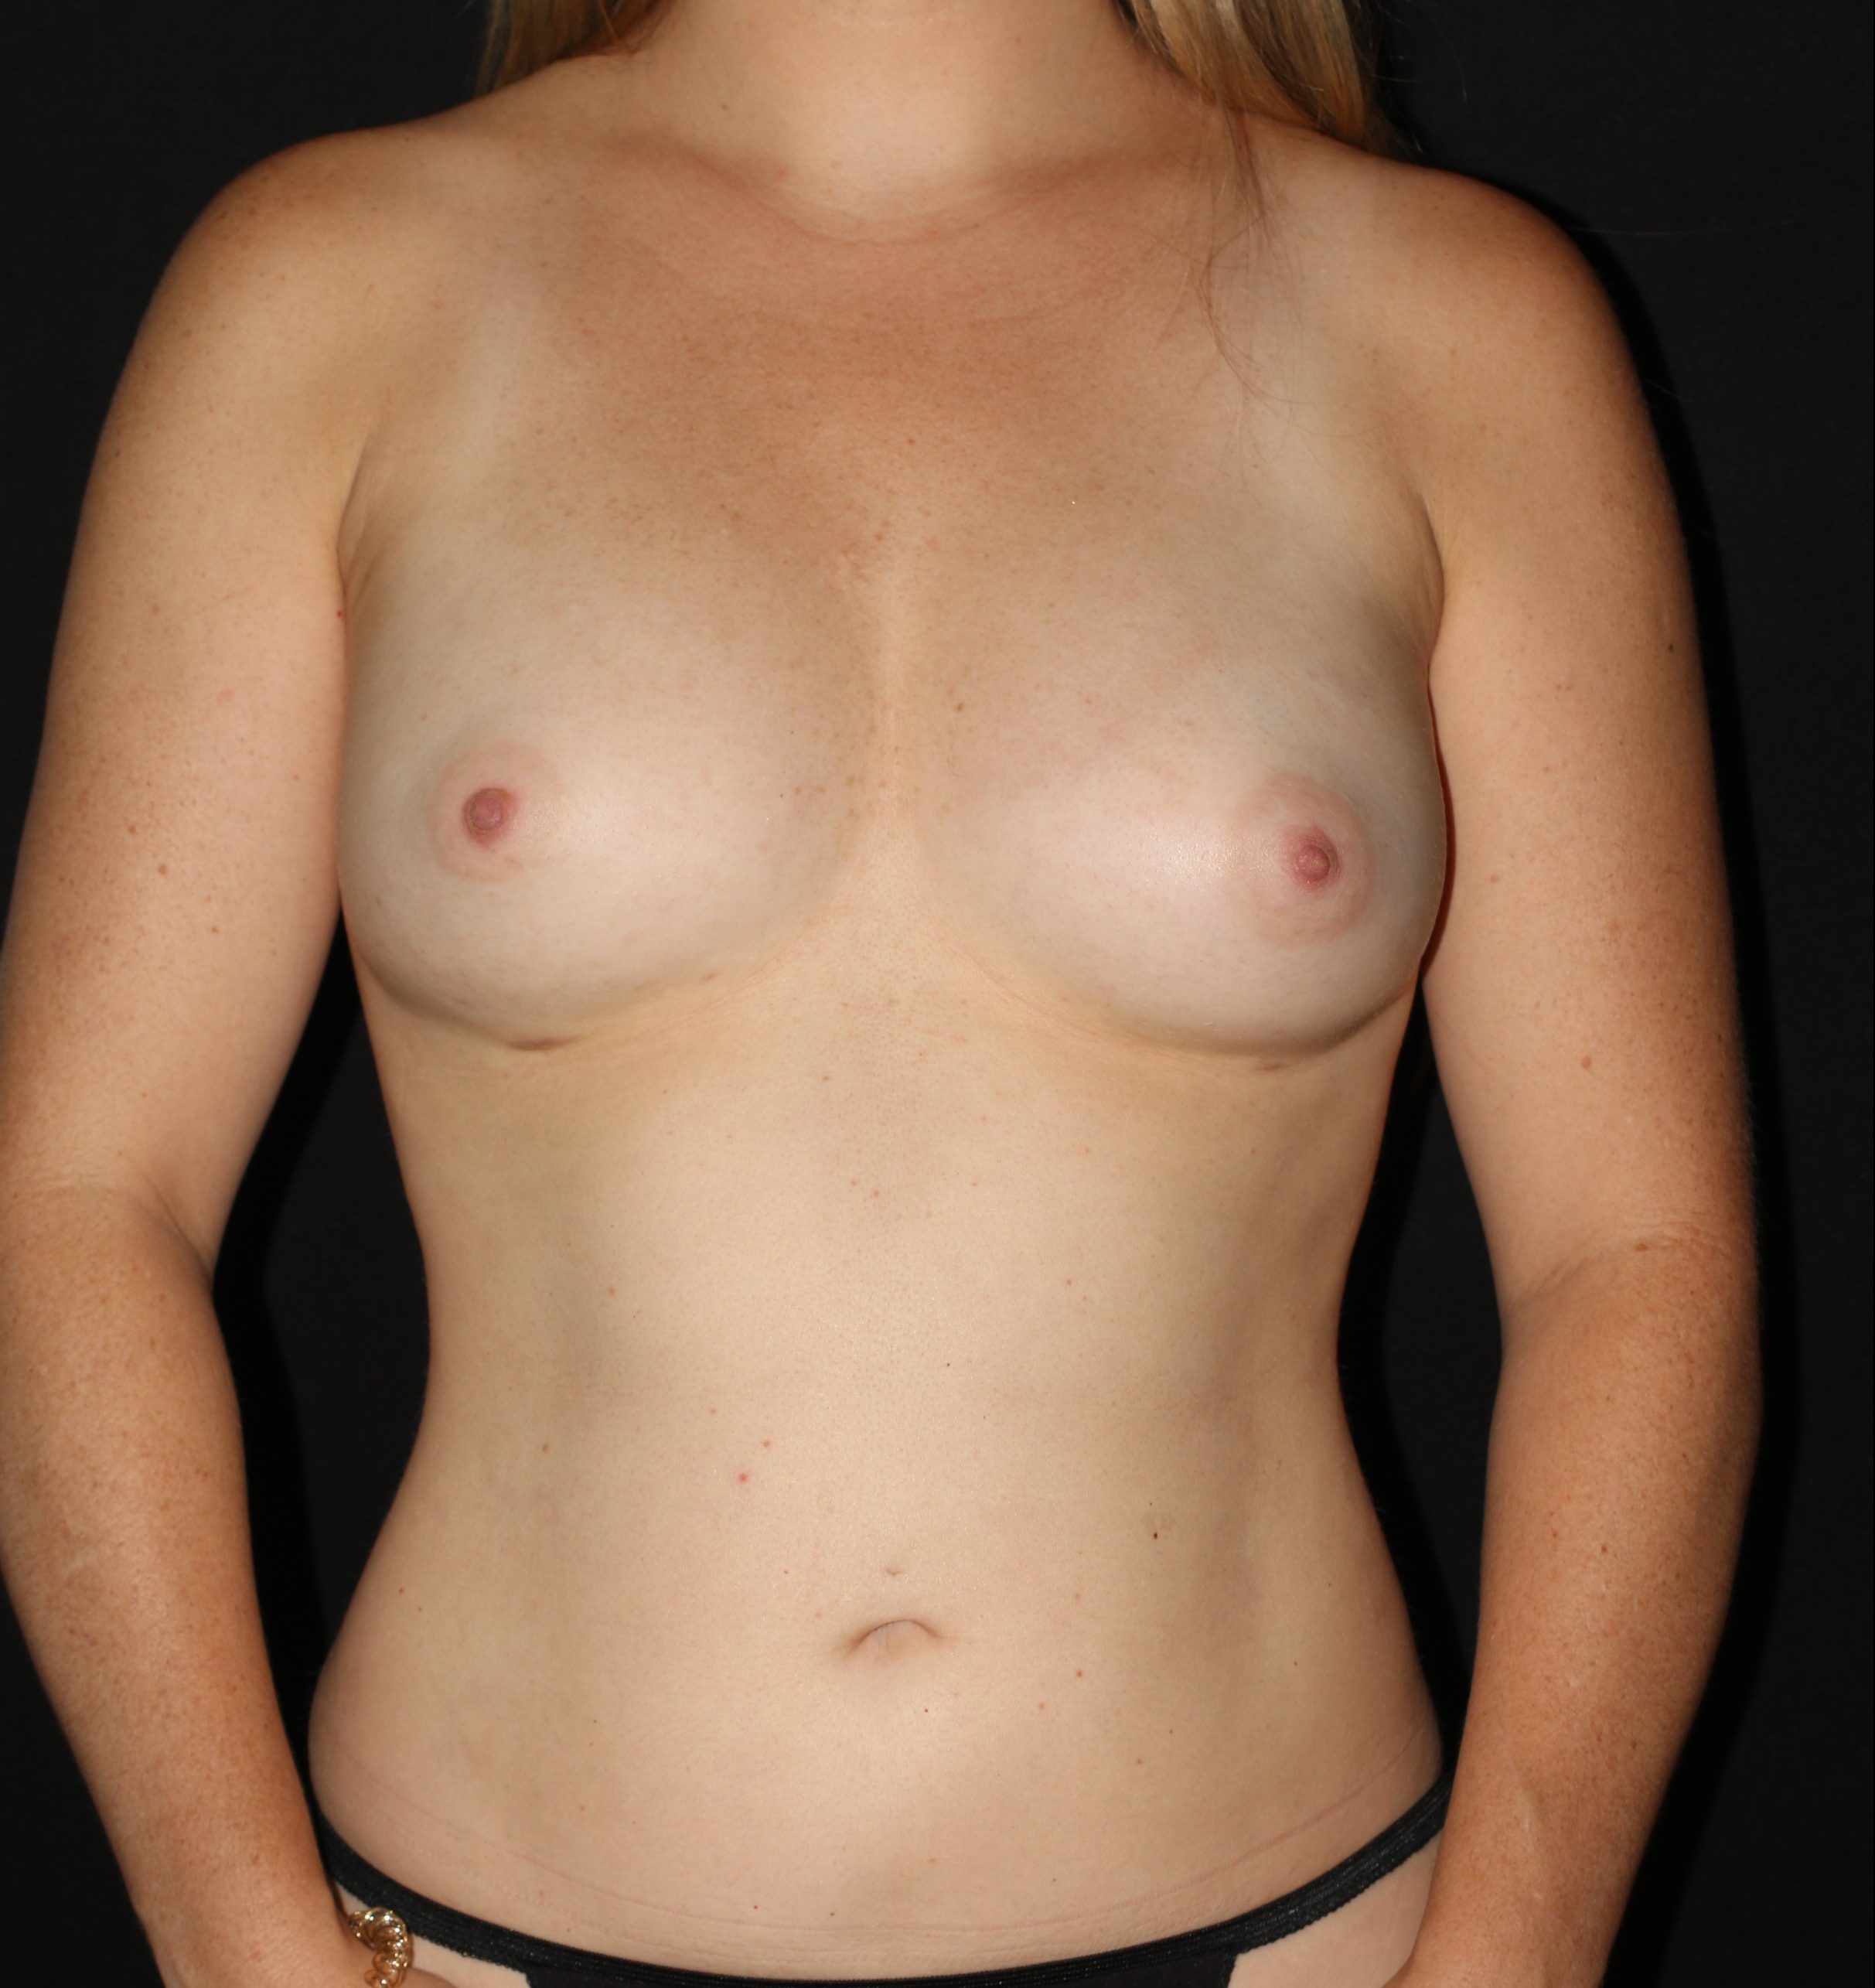 Breast Augmentation with Fat Grafting - Before & After - Dr. Placik